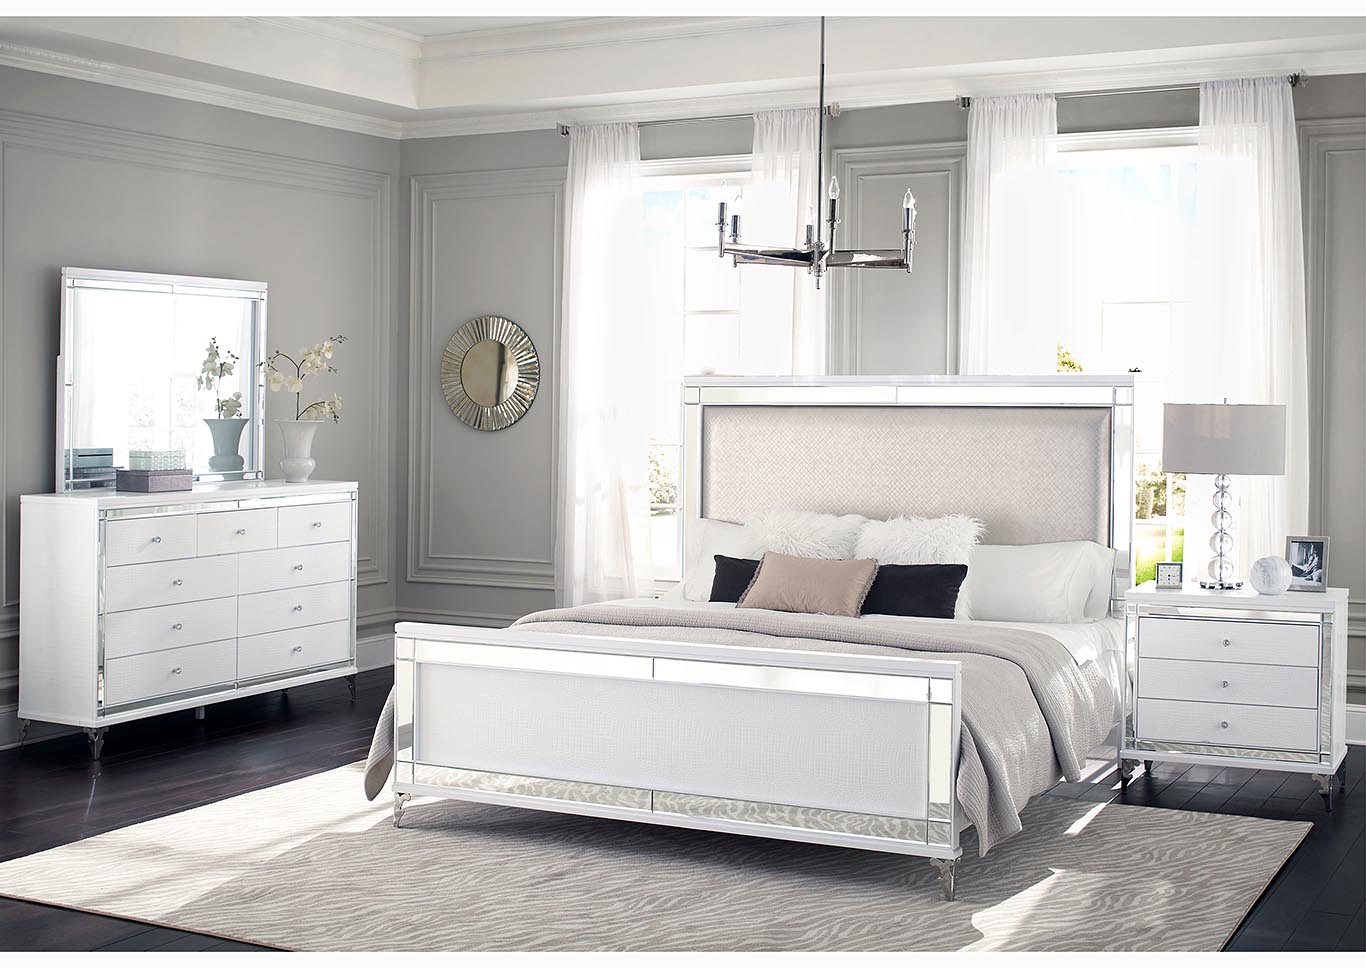 Catalina Metallic White Upholstered Queen Panel Bed w/Dresser & Mirror,Global Furniture USA